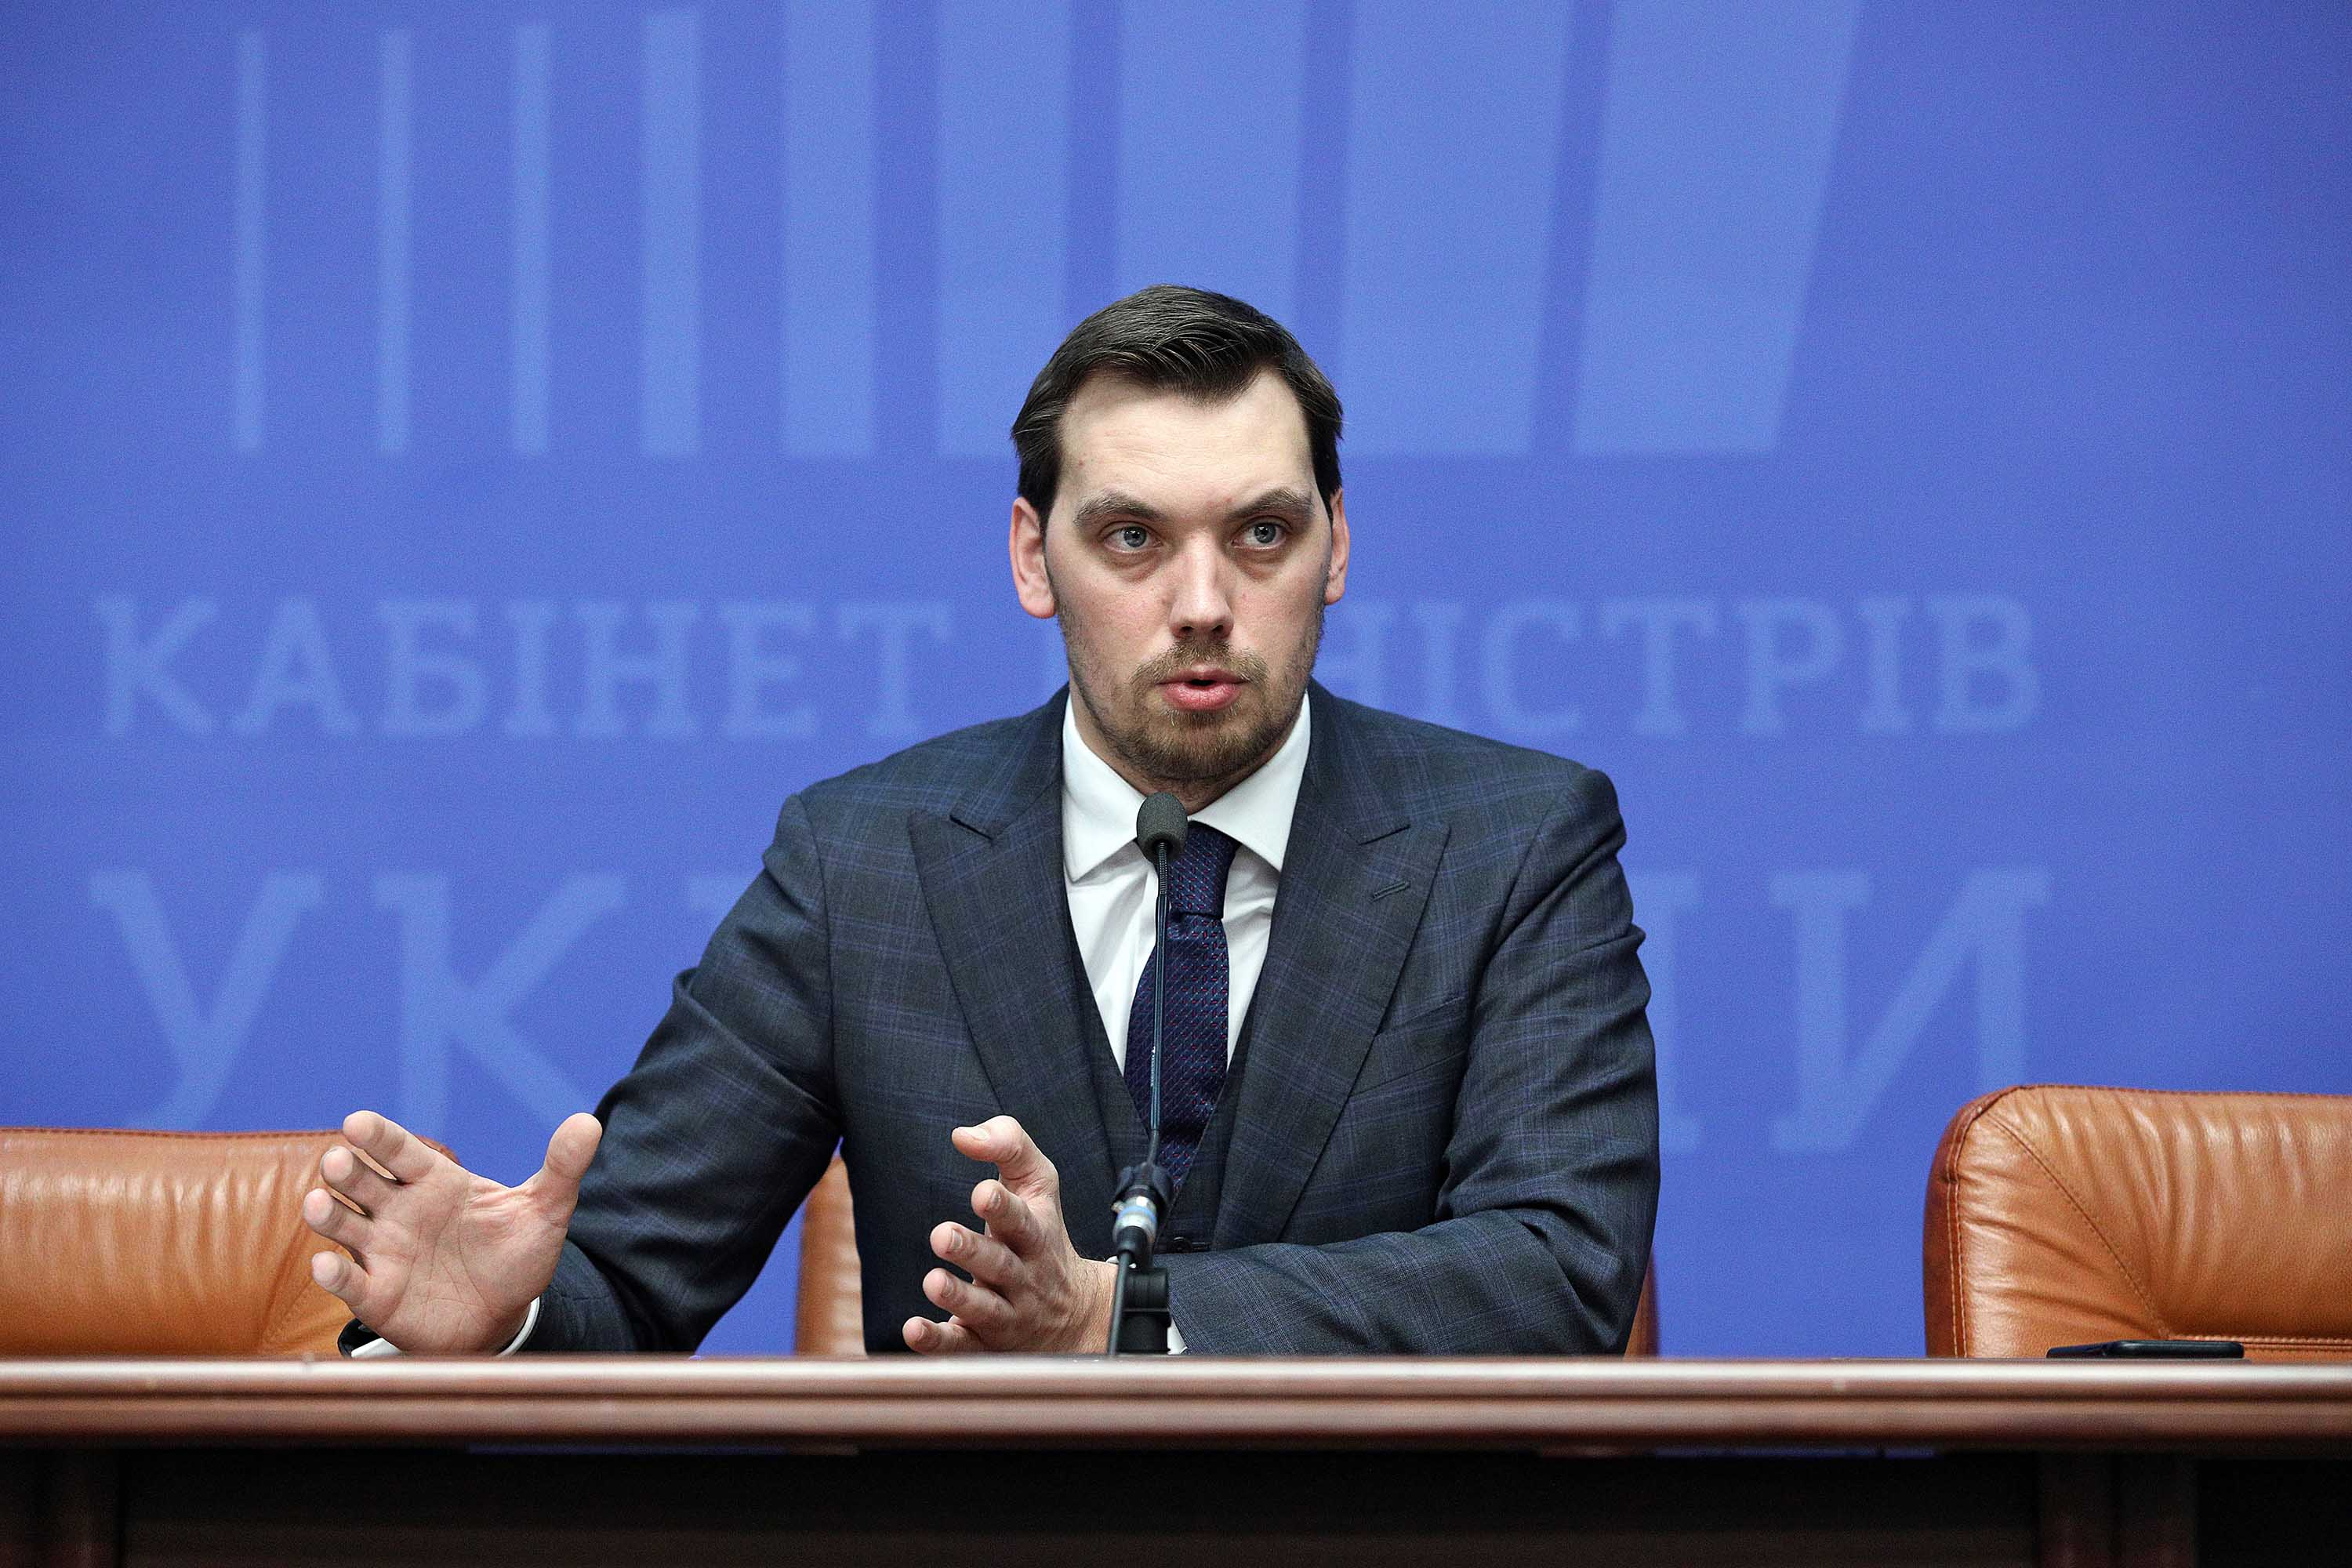 Prime Minister of Ukraine Oleksiy Honcharuk holds a briefing in November 2019, in Kiev, Ukraine.